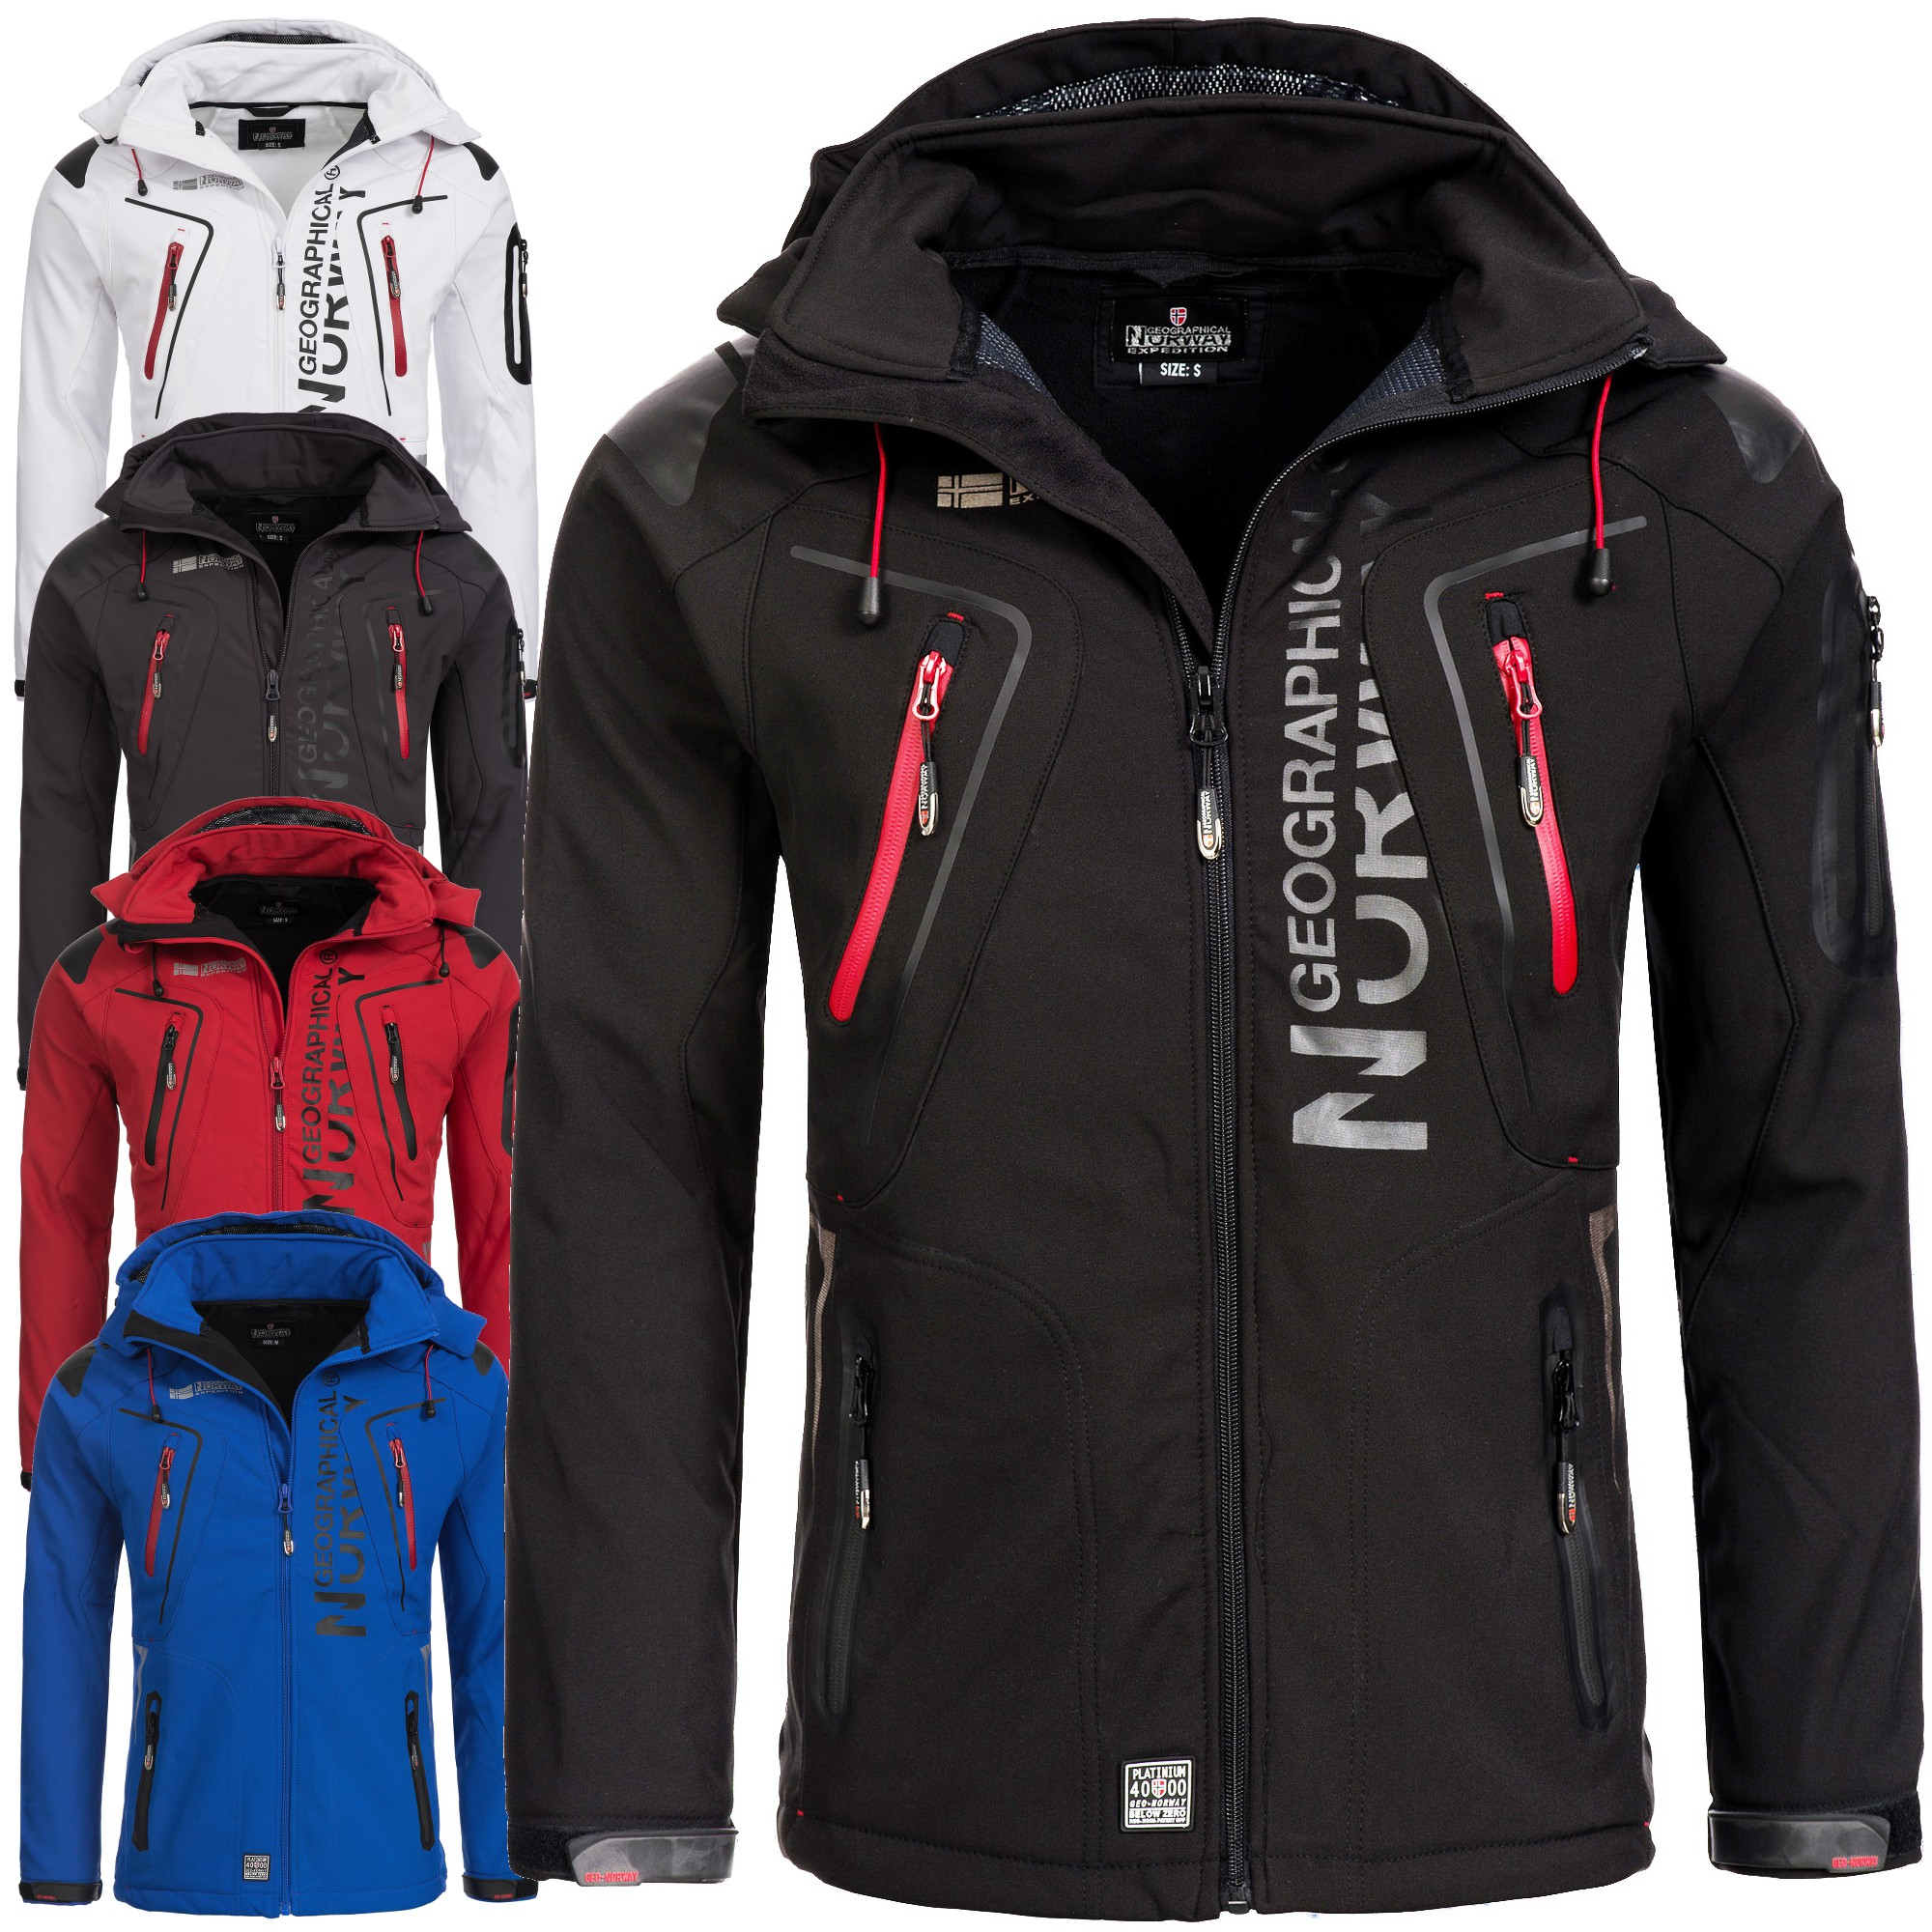 geographical norway tangata herren softshell jacke softshelljacke s xxl ebay. Black Bedroom Furniture Sets. Home Design Ideas